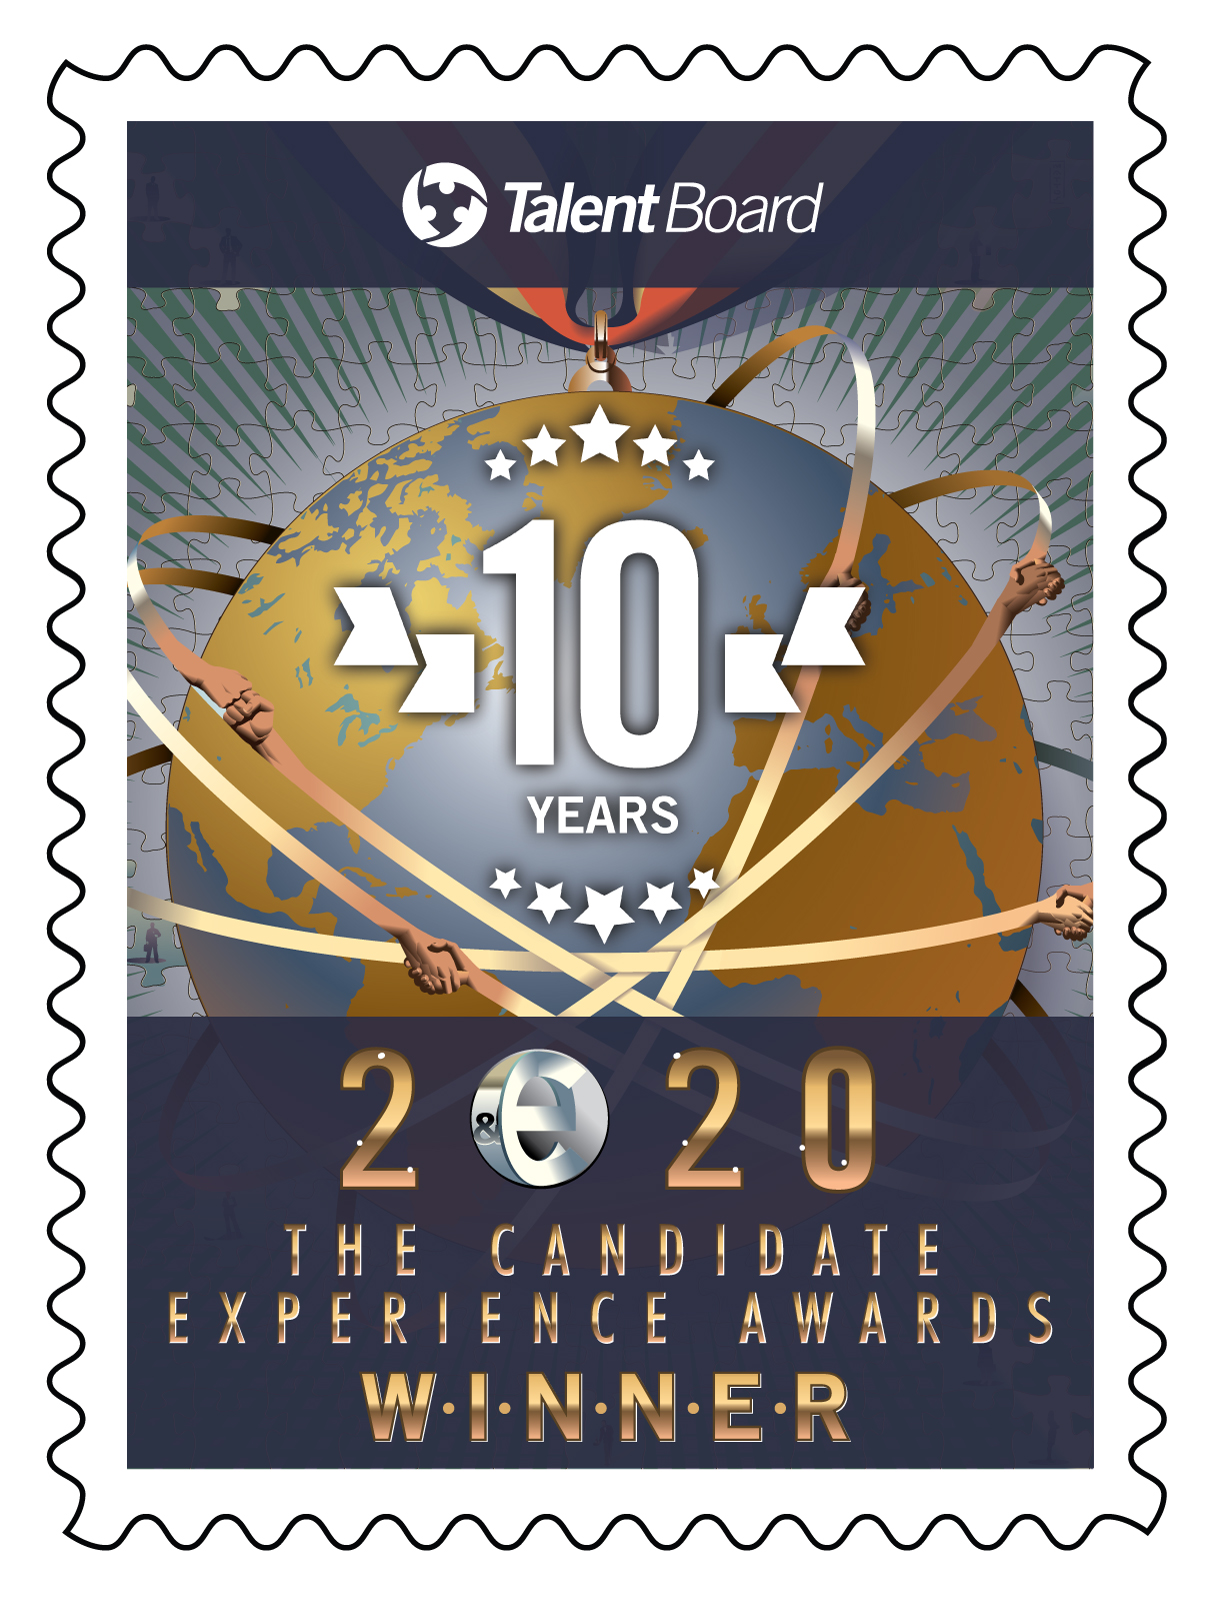 Virtusa Named a Winner in the 2020 Candidate Experience Awards by Talent Board